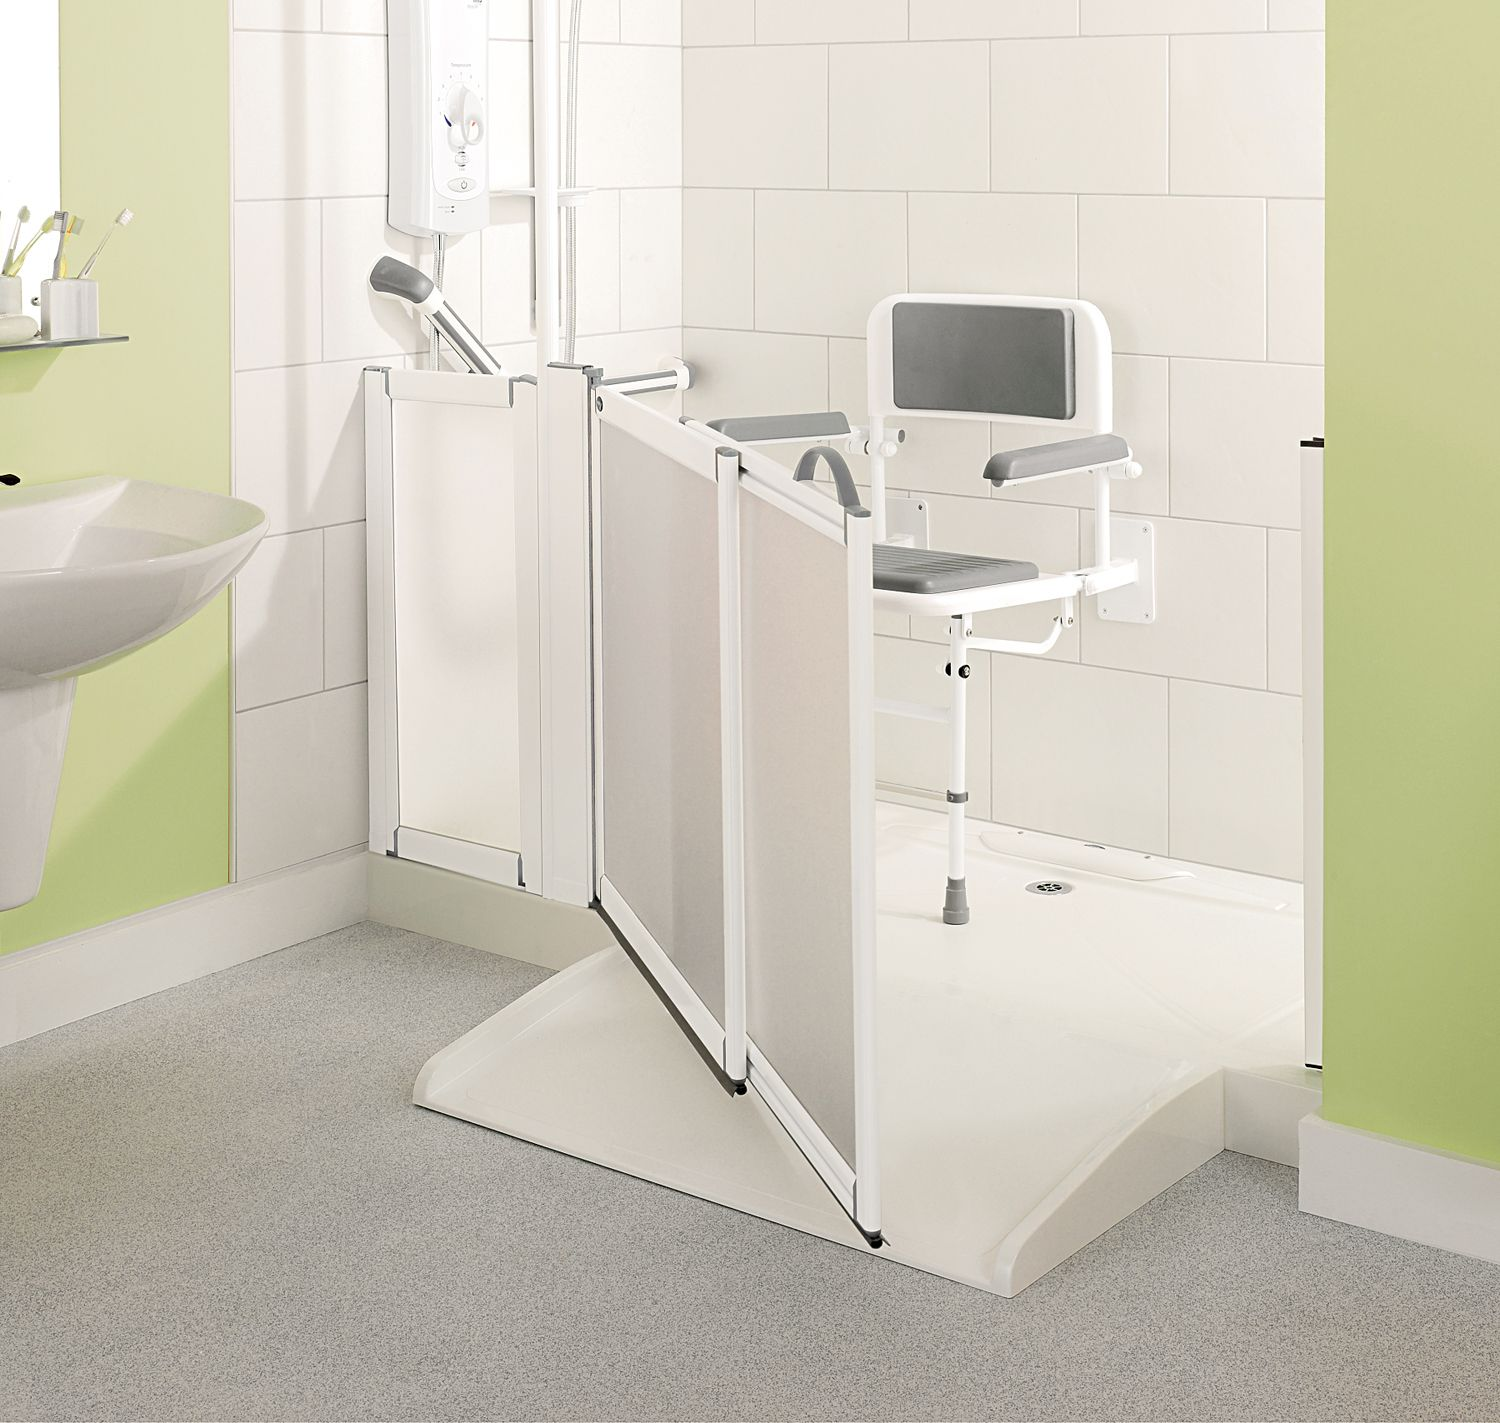 Make disabled showering easier with the impey aqua easy - Bathroom modifications for disabled ...